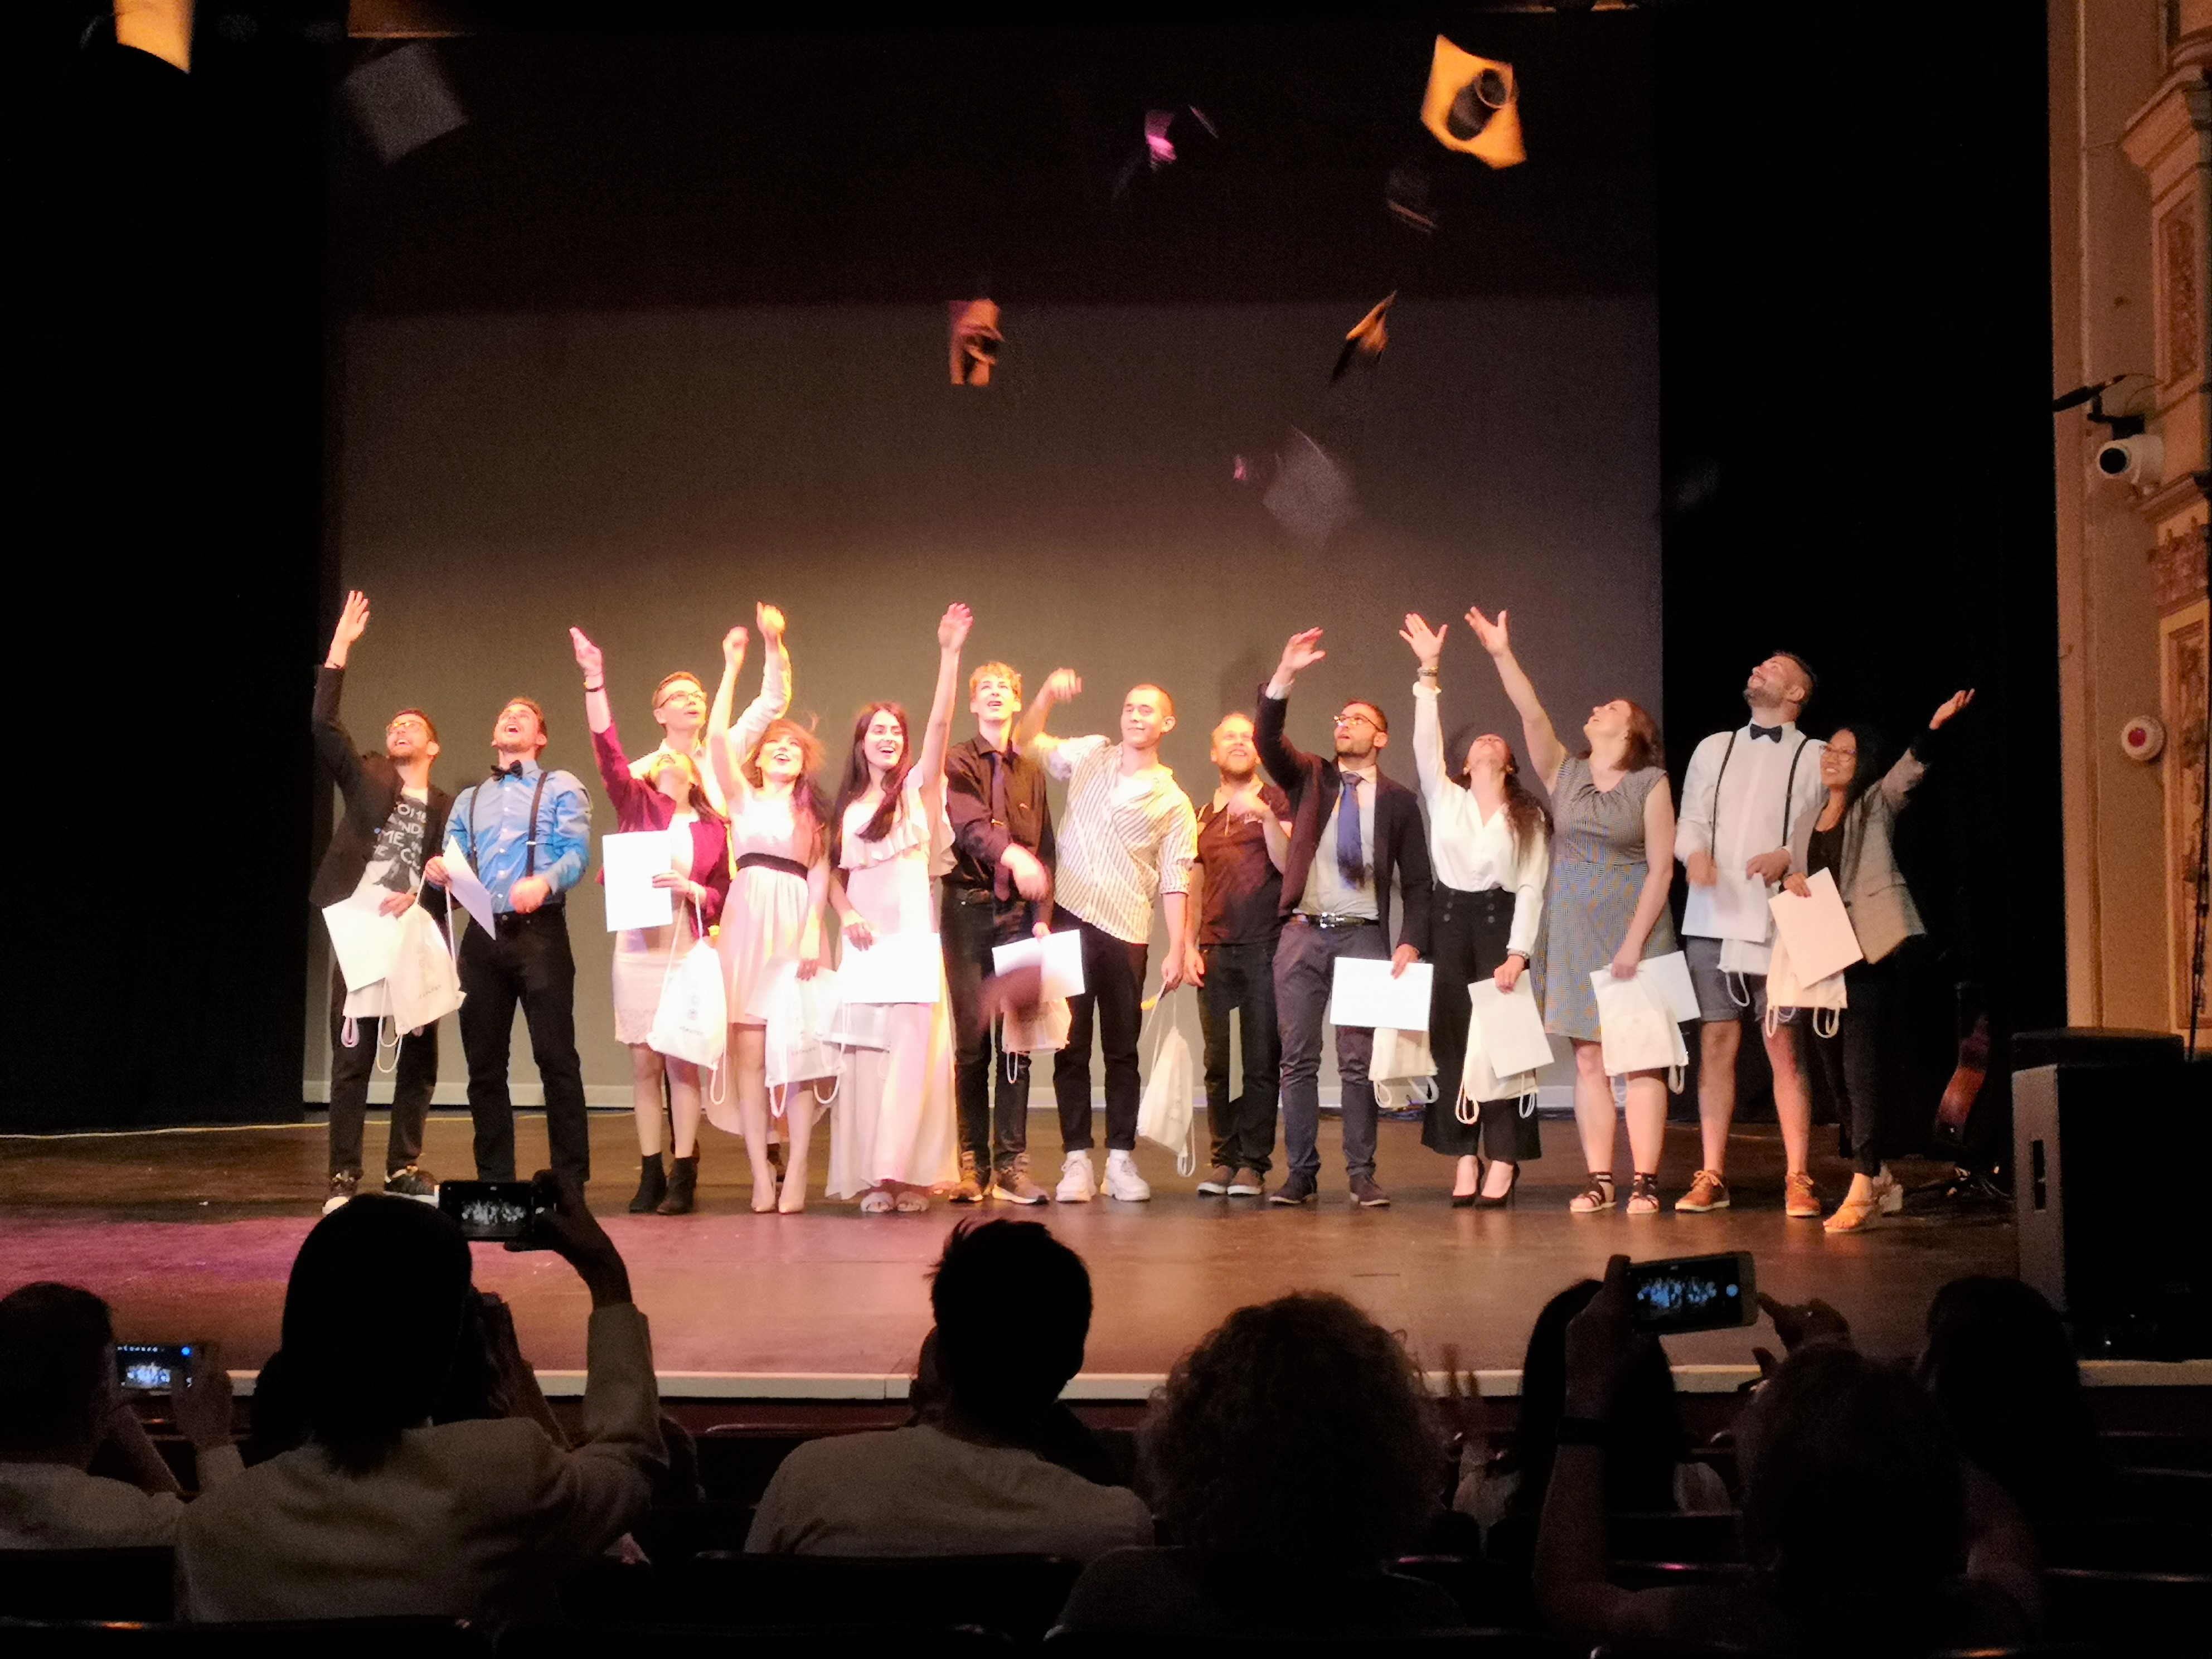 Graduation – August 2019 – What An Event!